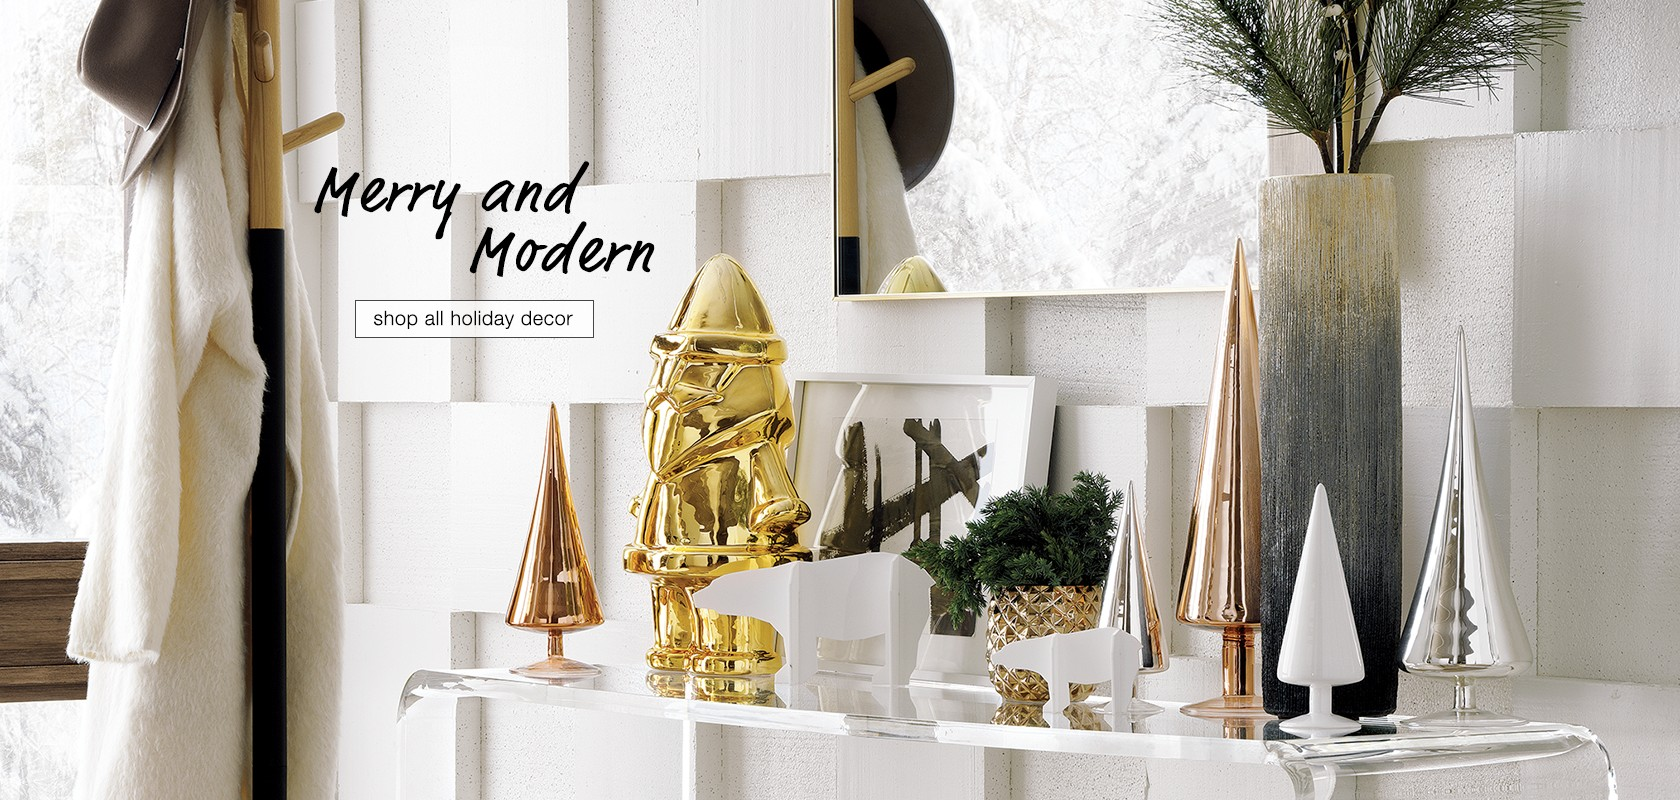 merry and modern